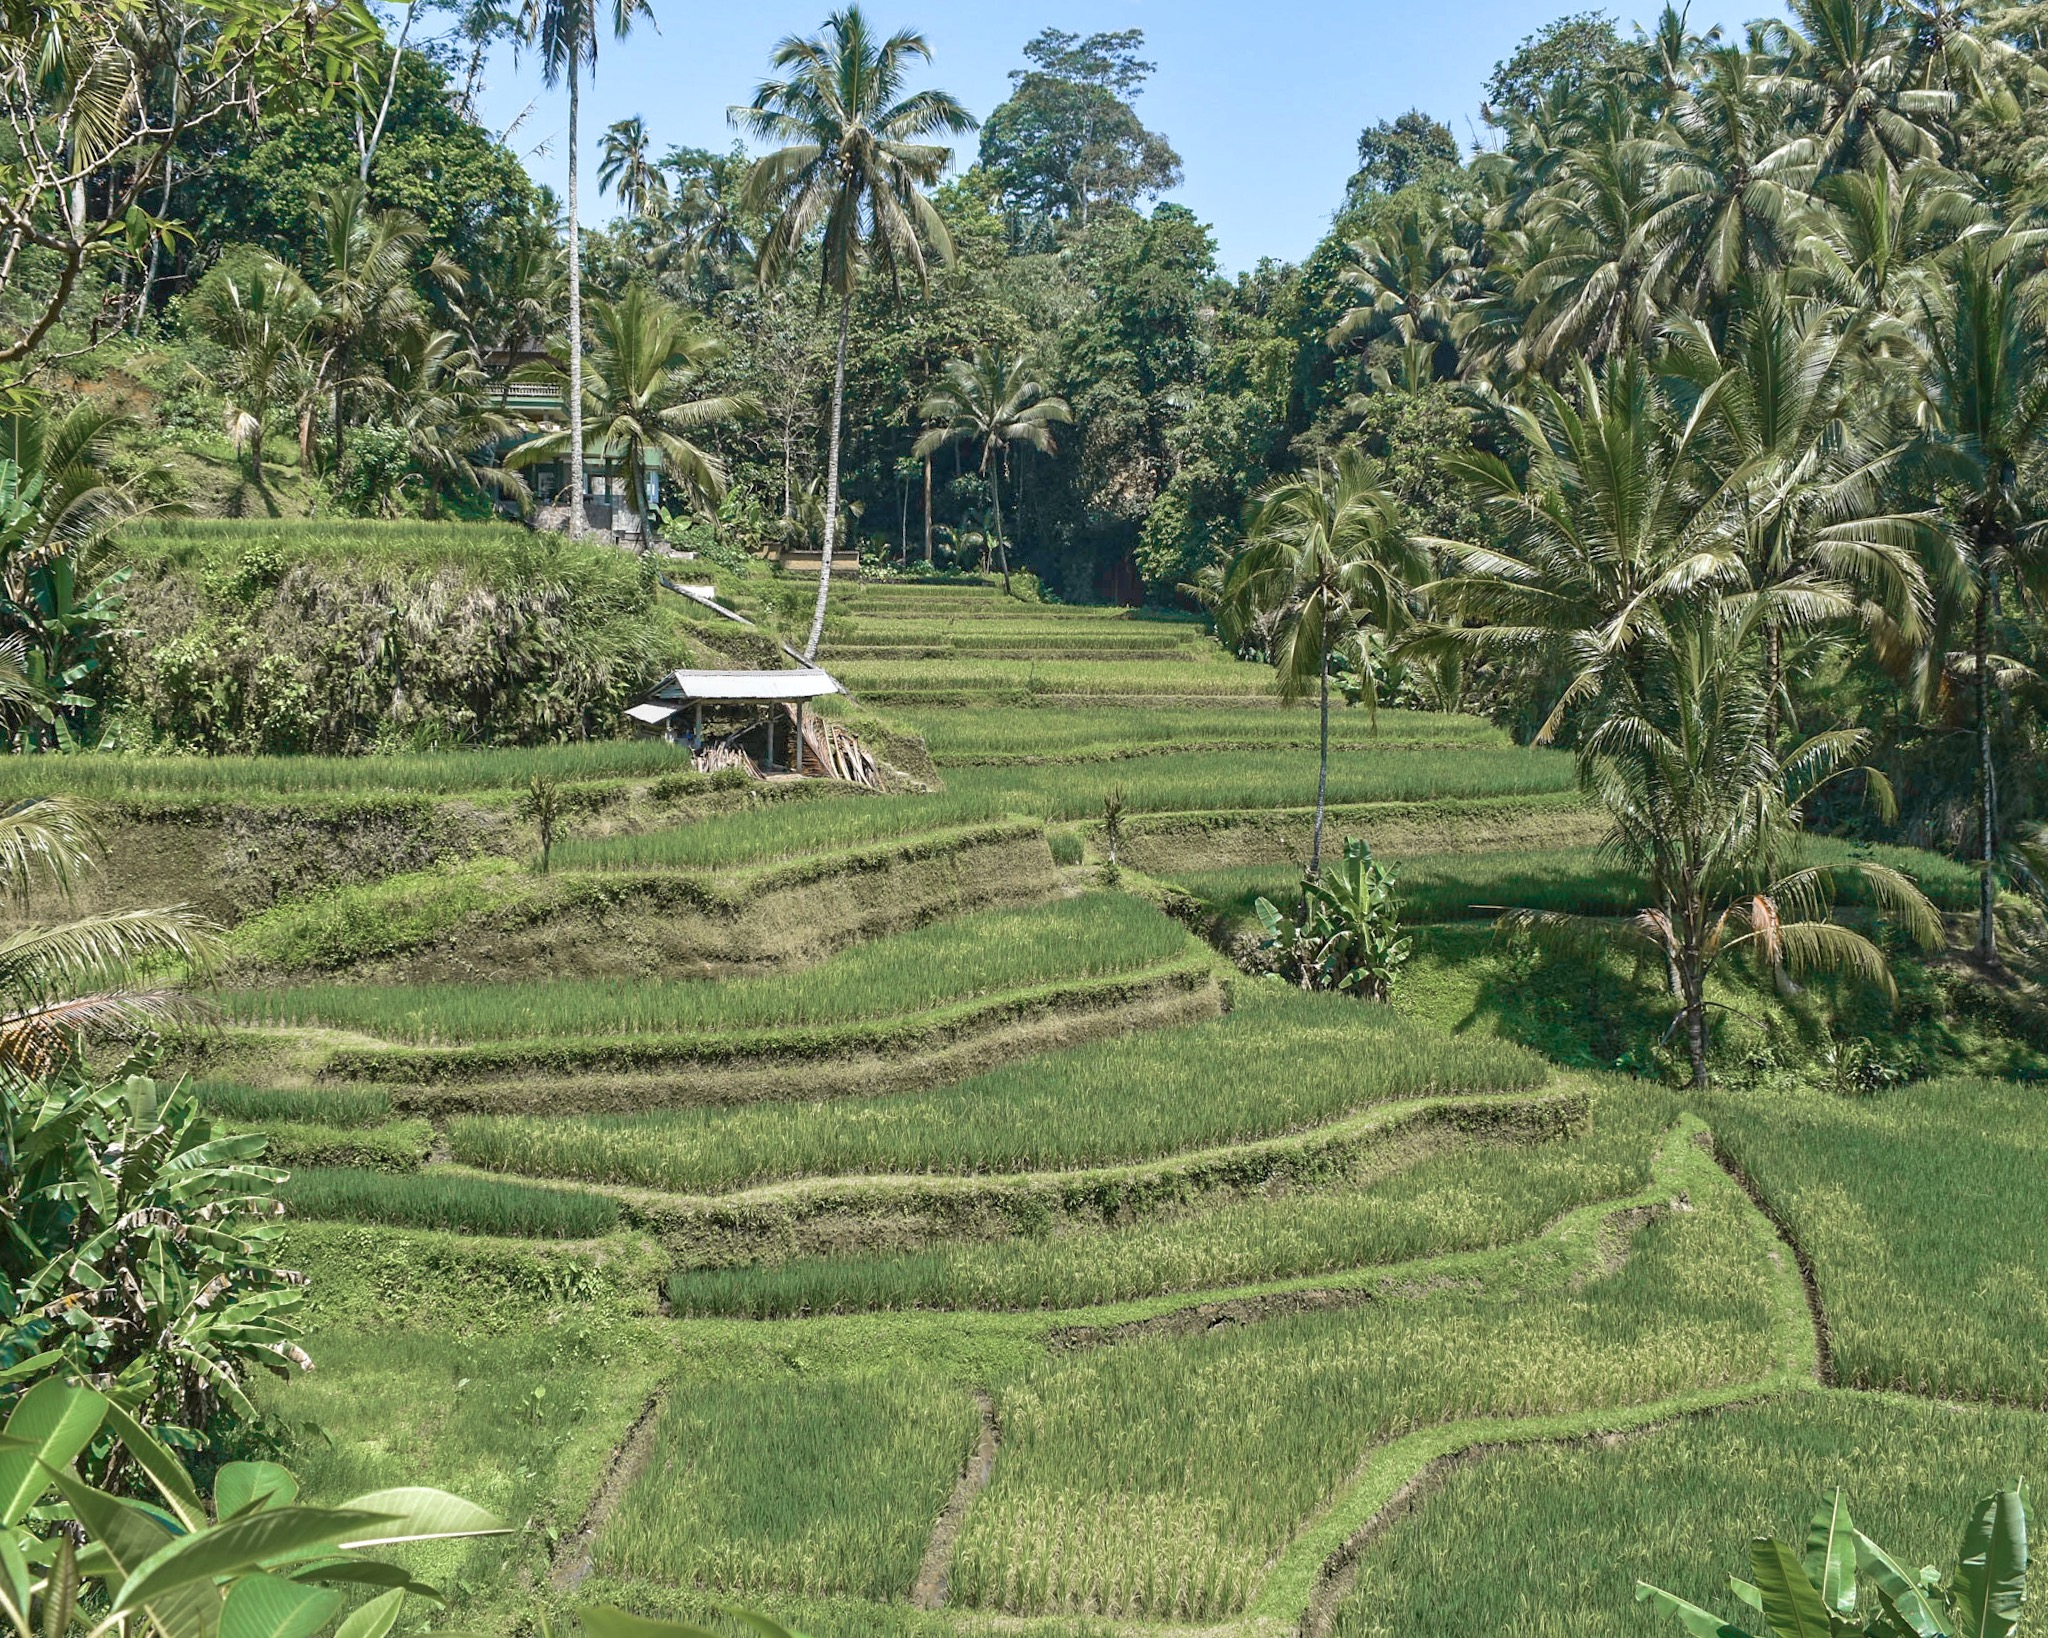 Rice Fields in Ubud, Bali, Indonesia